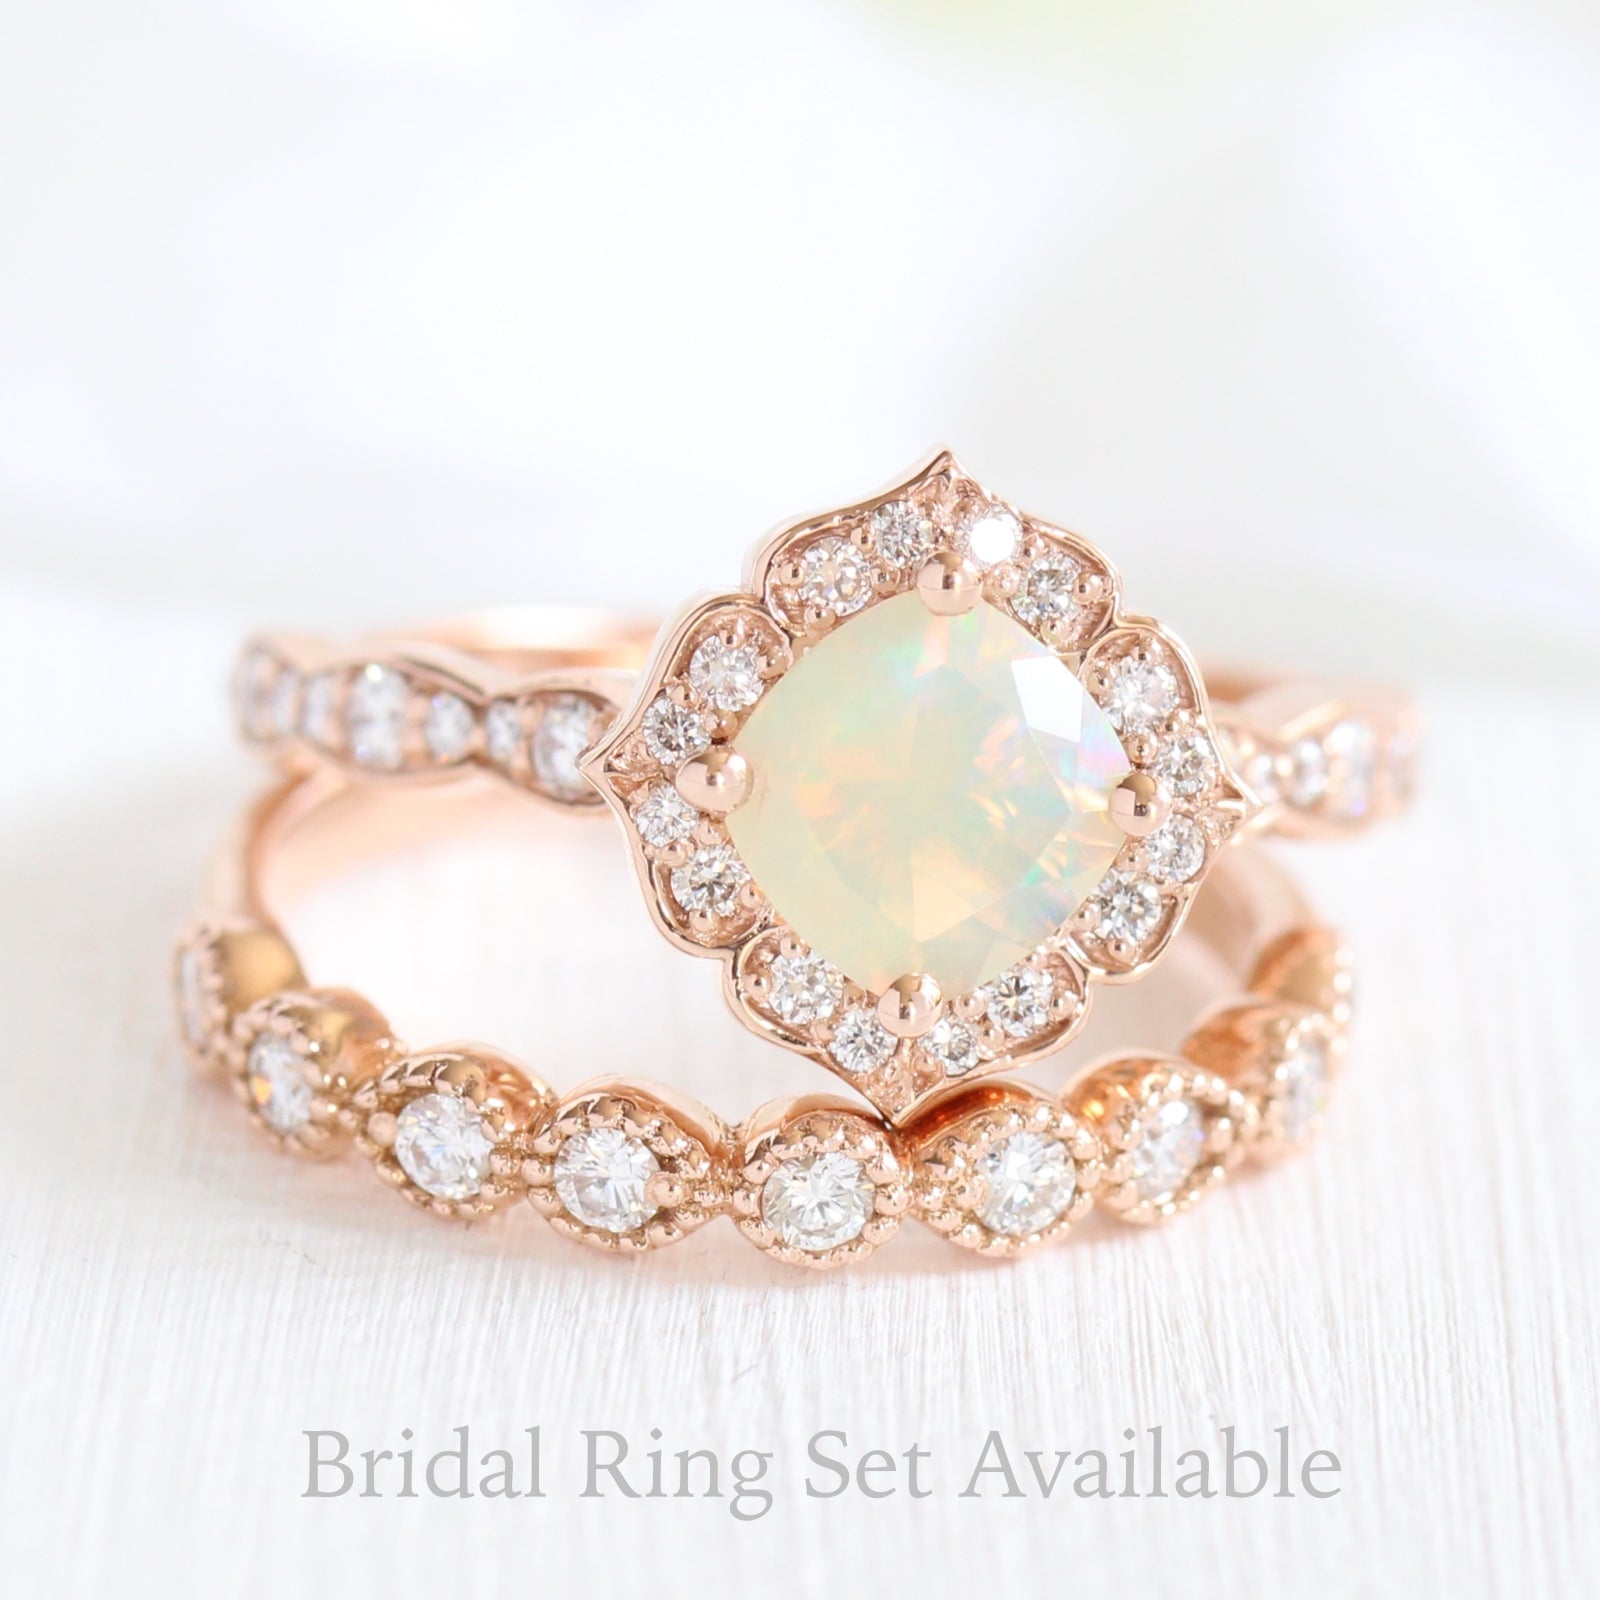 floral band flower band pattern band OPAL COCKTAIL RING- gemstone ring faceted leaves band 8mm opal vintage opal ring cocktail ring